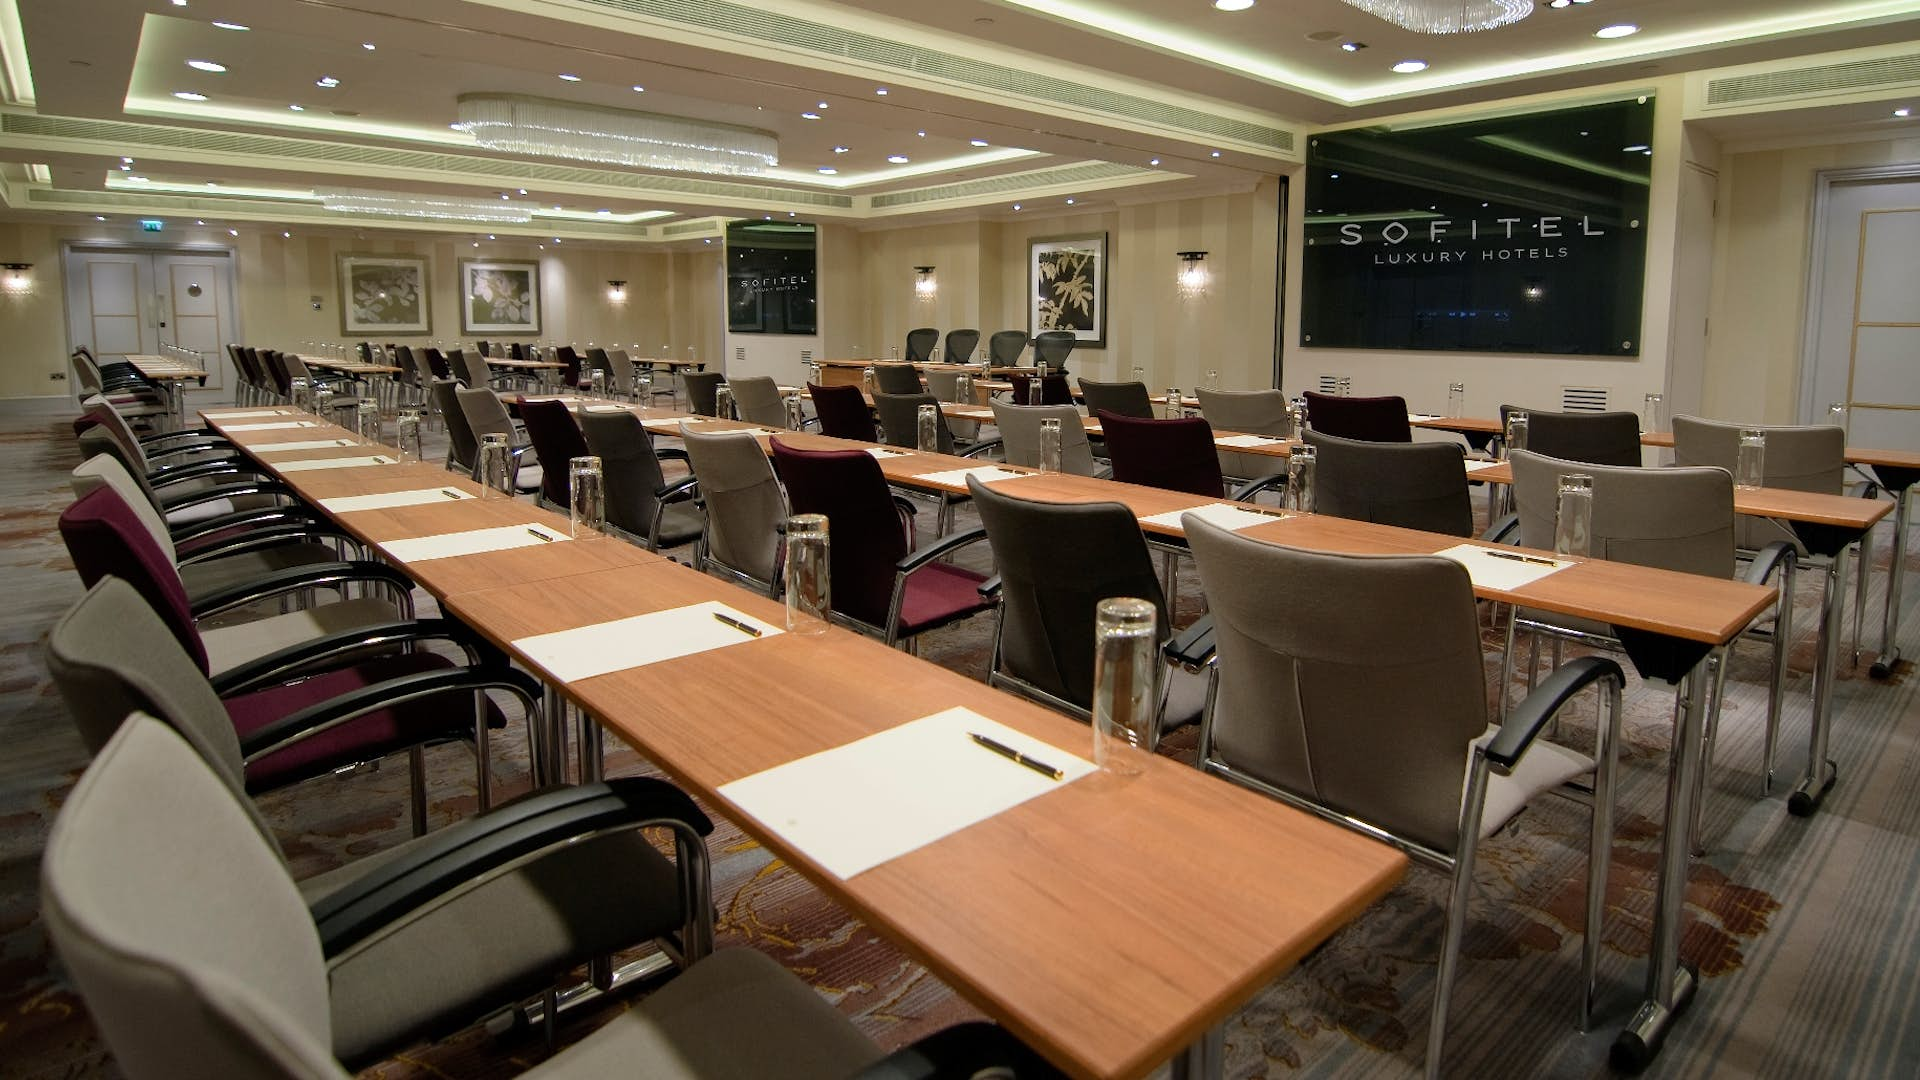 Classroom setup in a meeting room at Sofitel St James